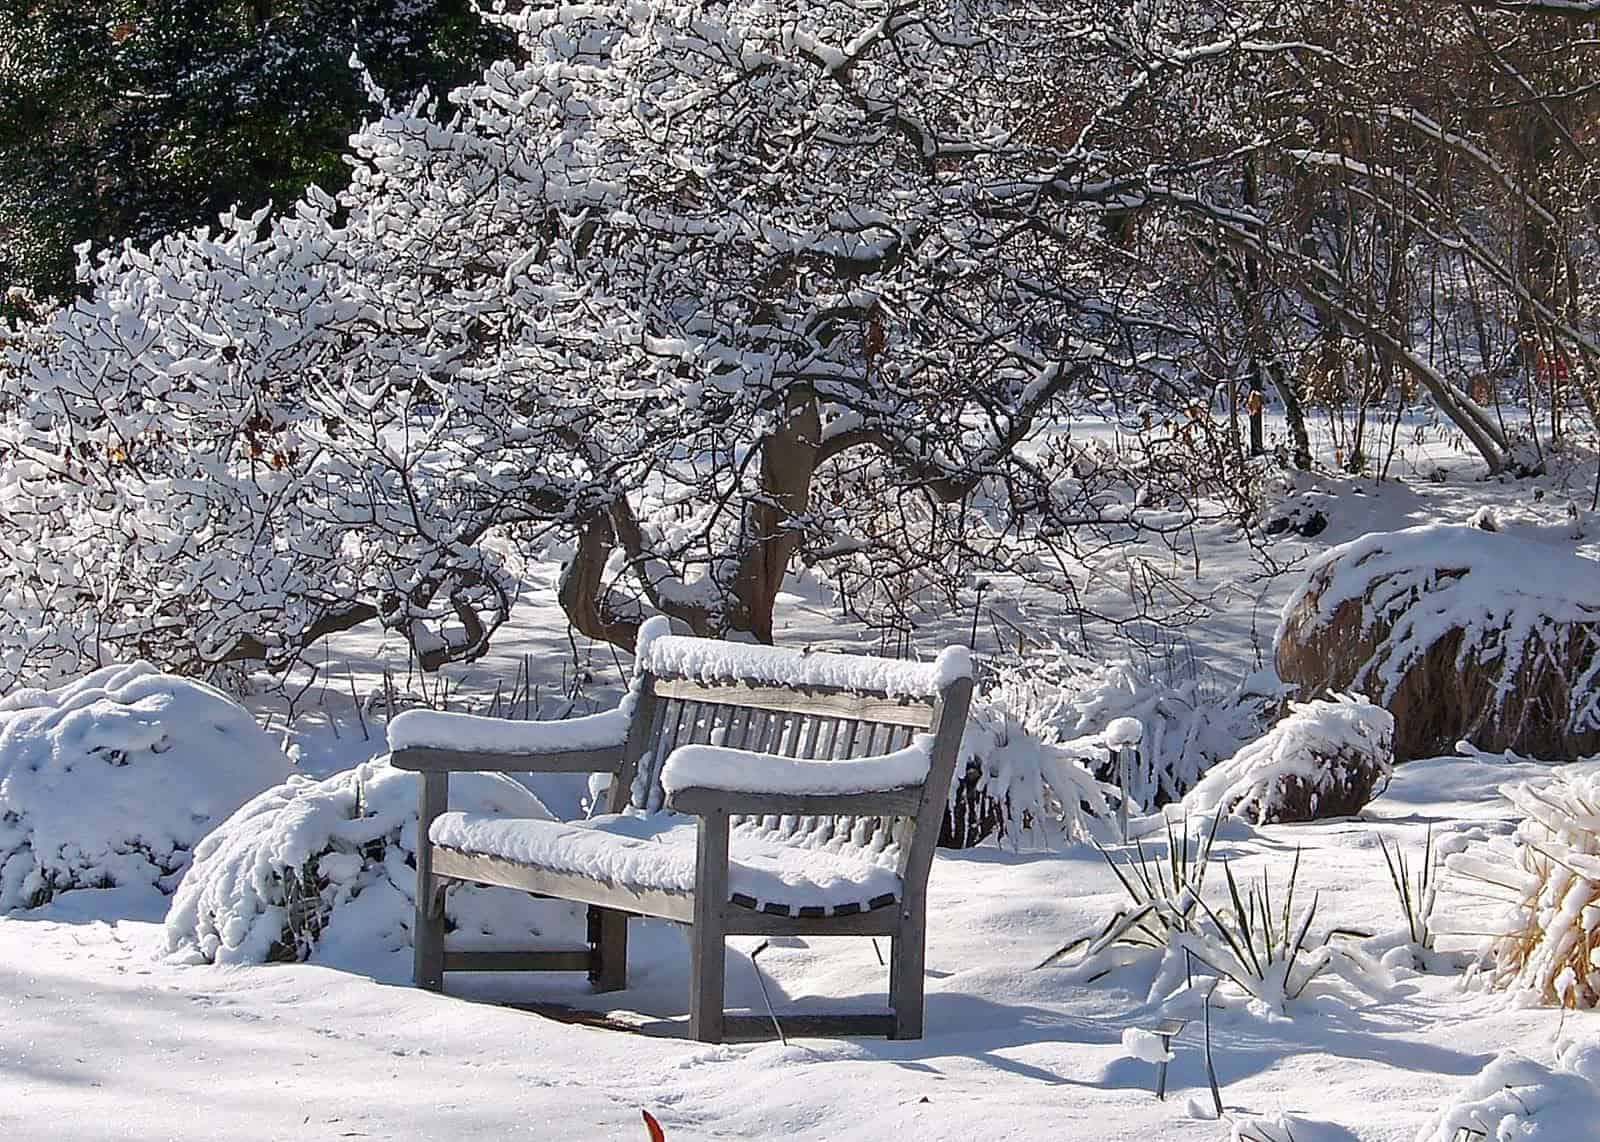 What to do in the garden during the winter 1001 gardens - Gardening mistakes maintaining garden winter ...